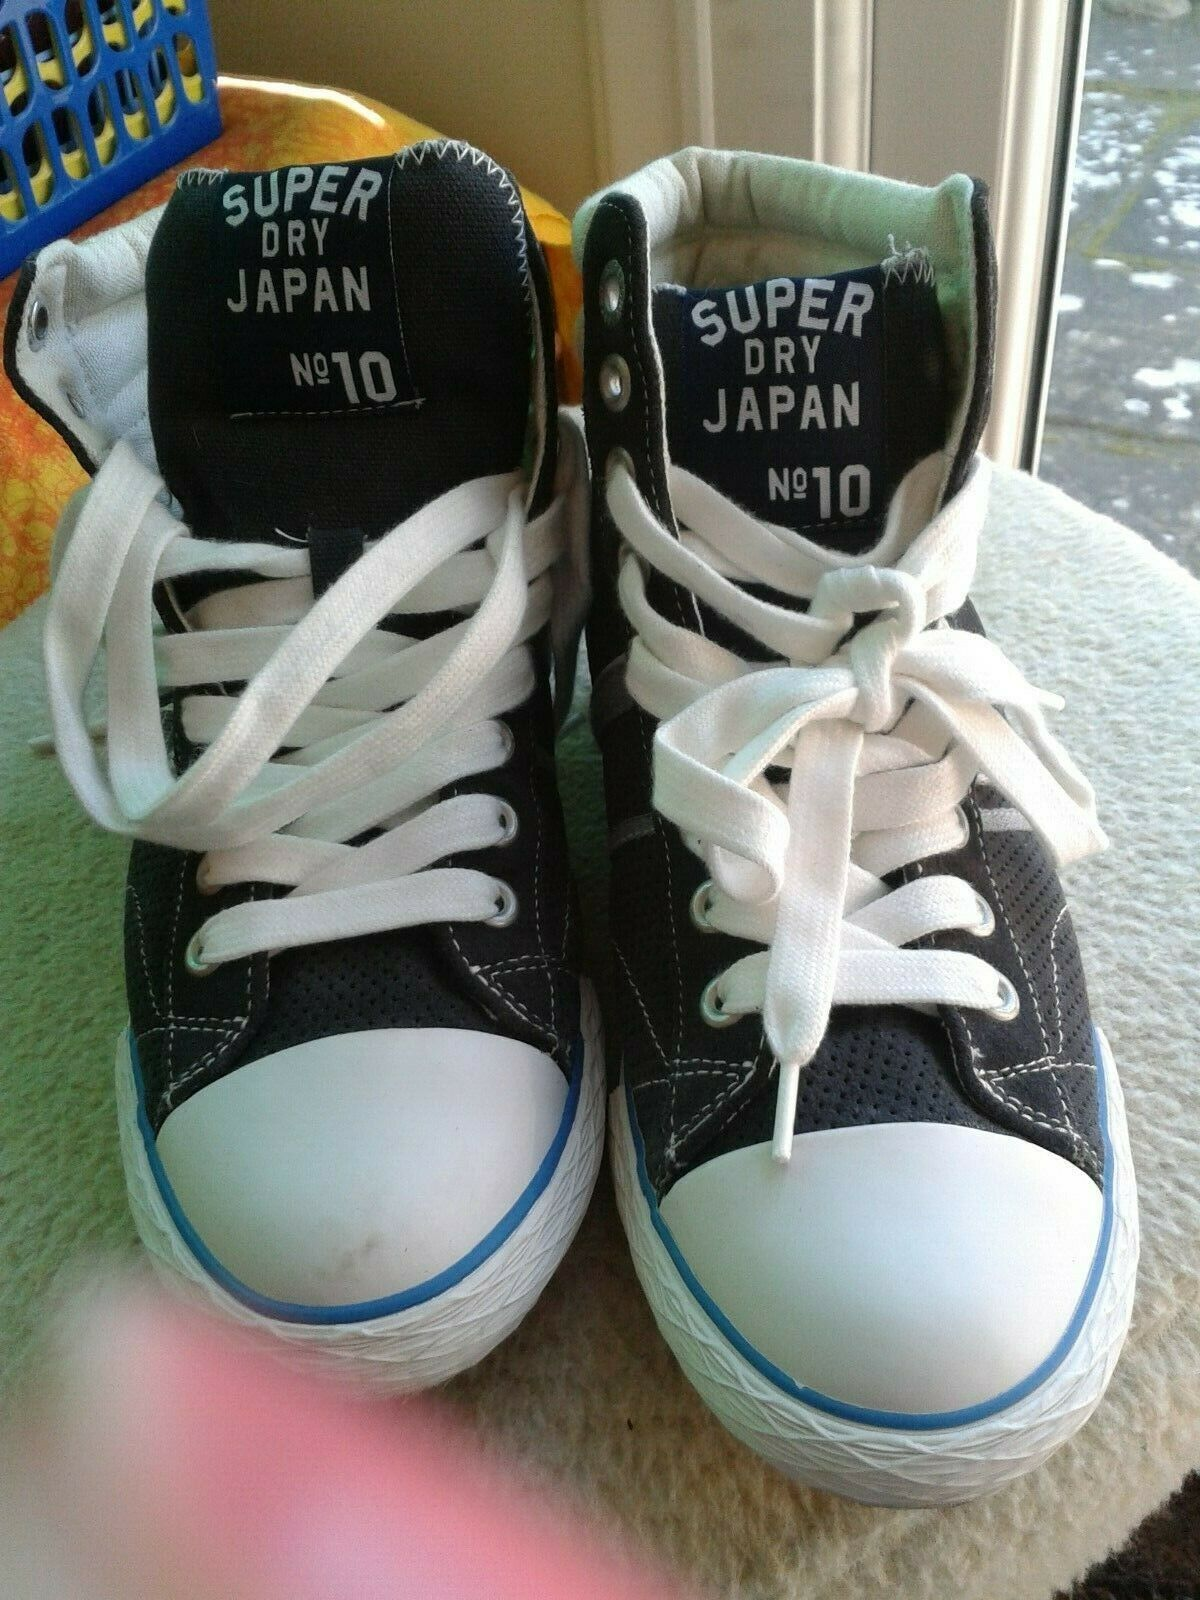 Super Dry Black & White Hi-Top Trainers   Leather & Canvas Uppers   UK5 EU38